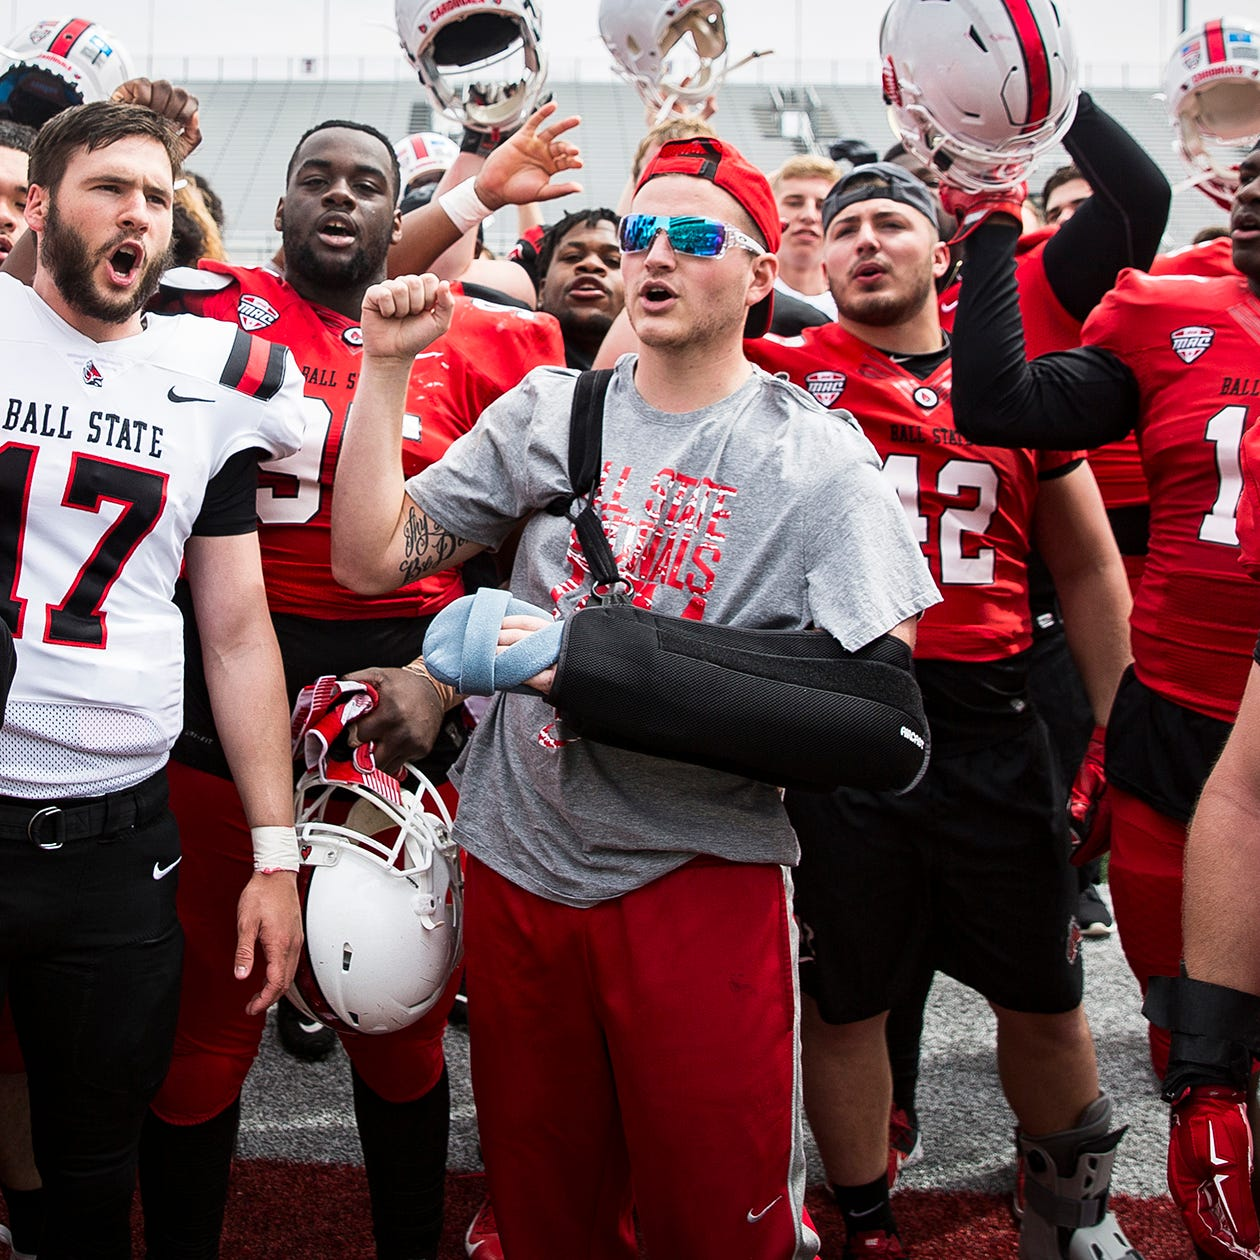 After nearly dying, Ball State football player lifts up everyone around him